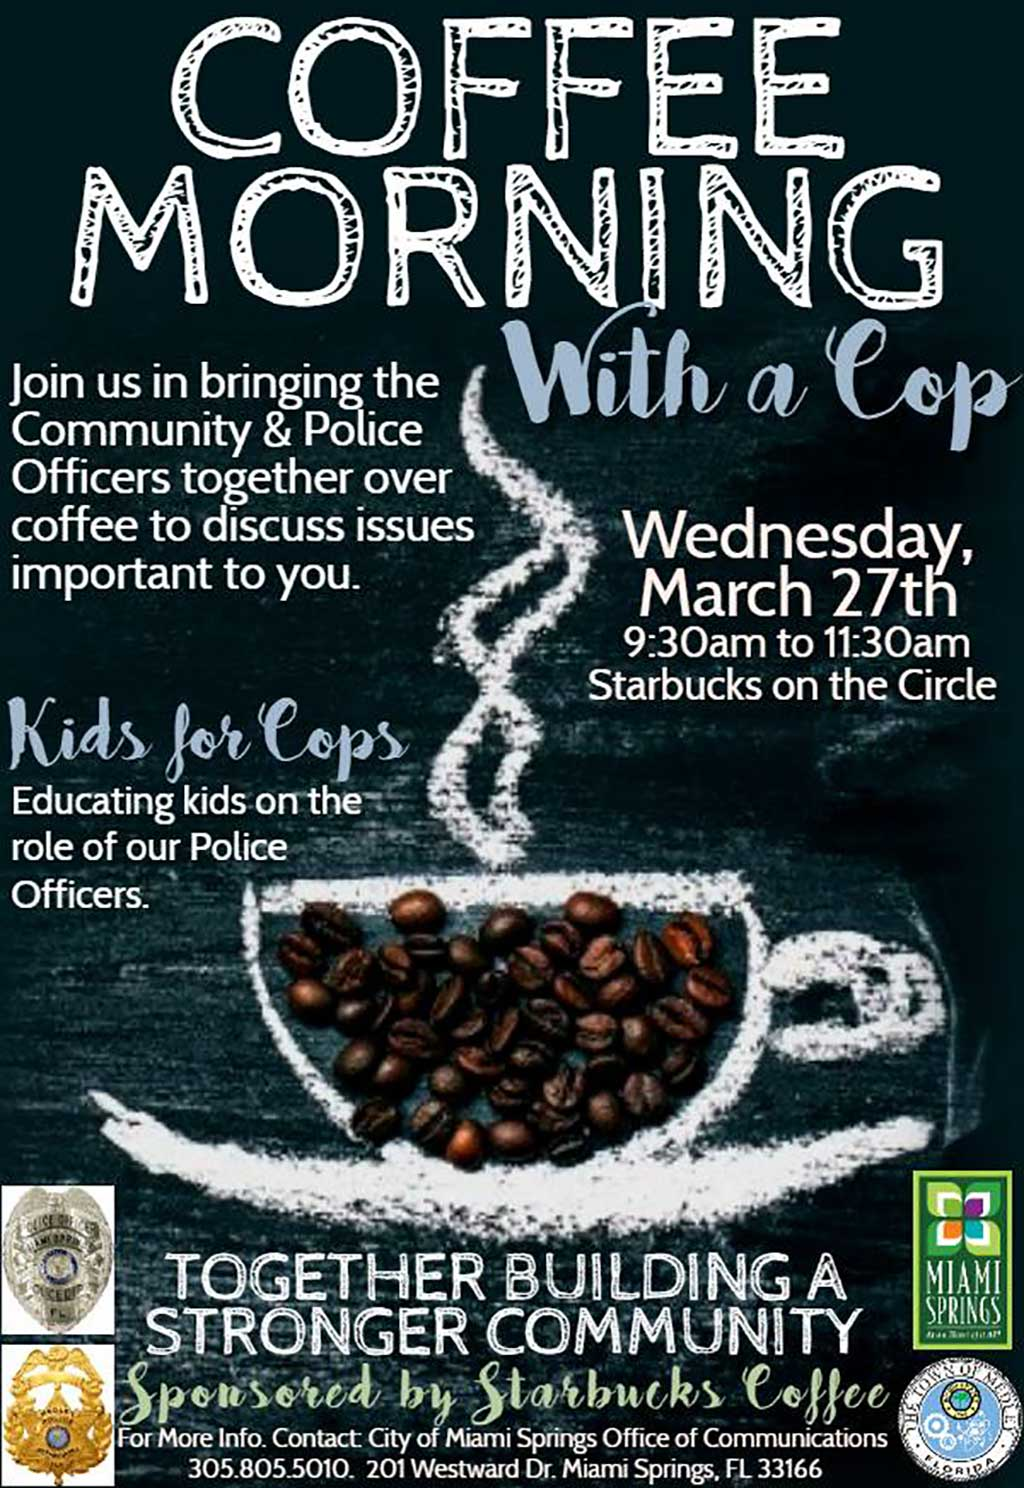 Coffee with a Cop - MiamiSprings com | Miami Springs News